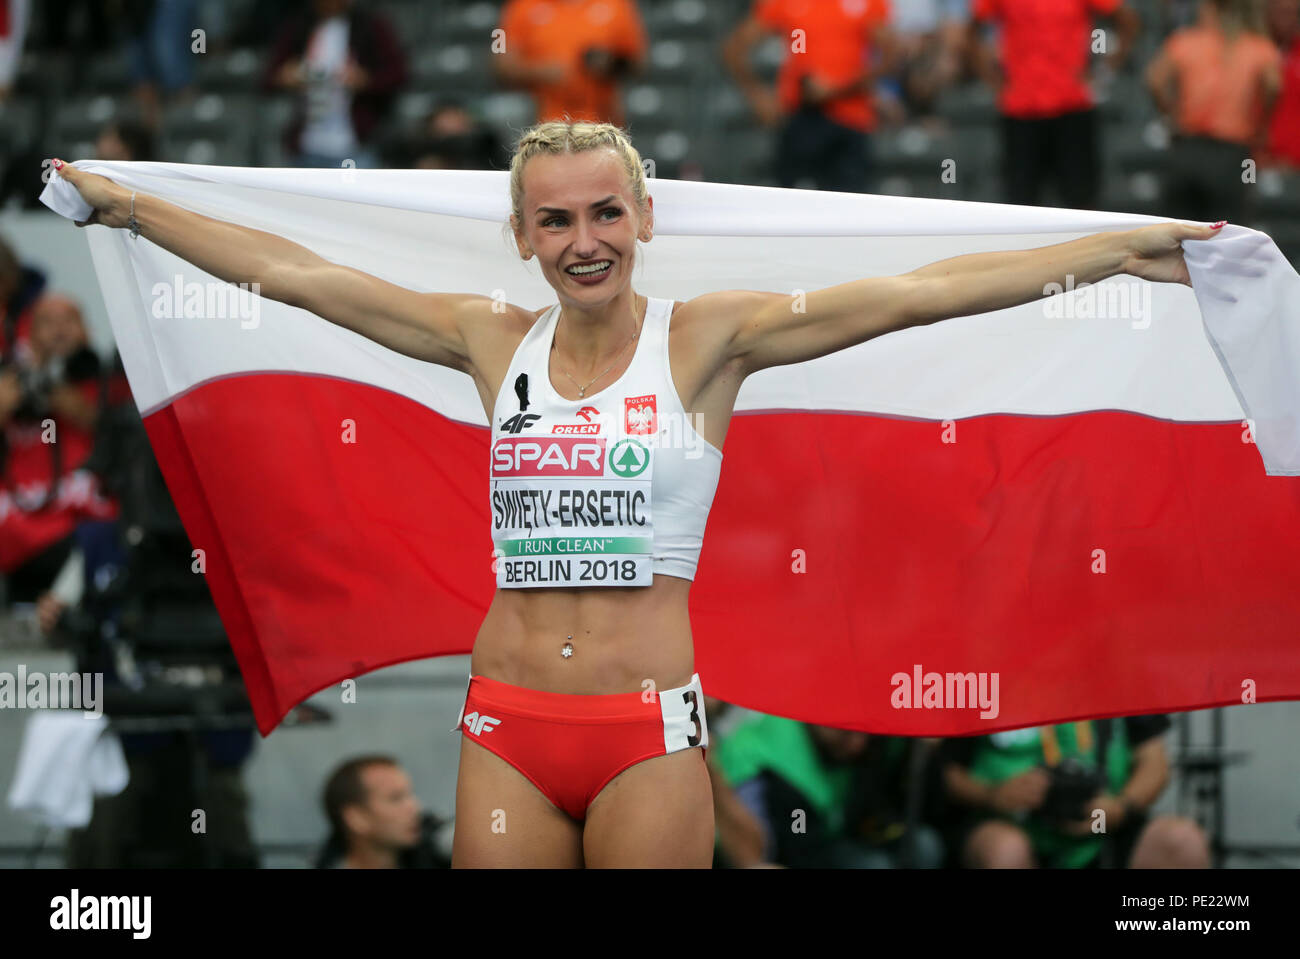 Berlin, Germany. 11th Aug, 2018. European Athletics Championships in the Olympic Stadium: 400 m finals, women: Gold medallist Justyna Swiety-Ersetic from Poland celebrates. Credit: Kay Nietfeld/dpa/Alamy Live News - Stock Image